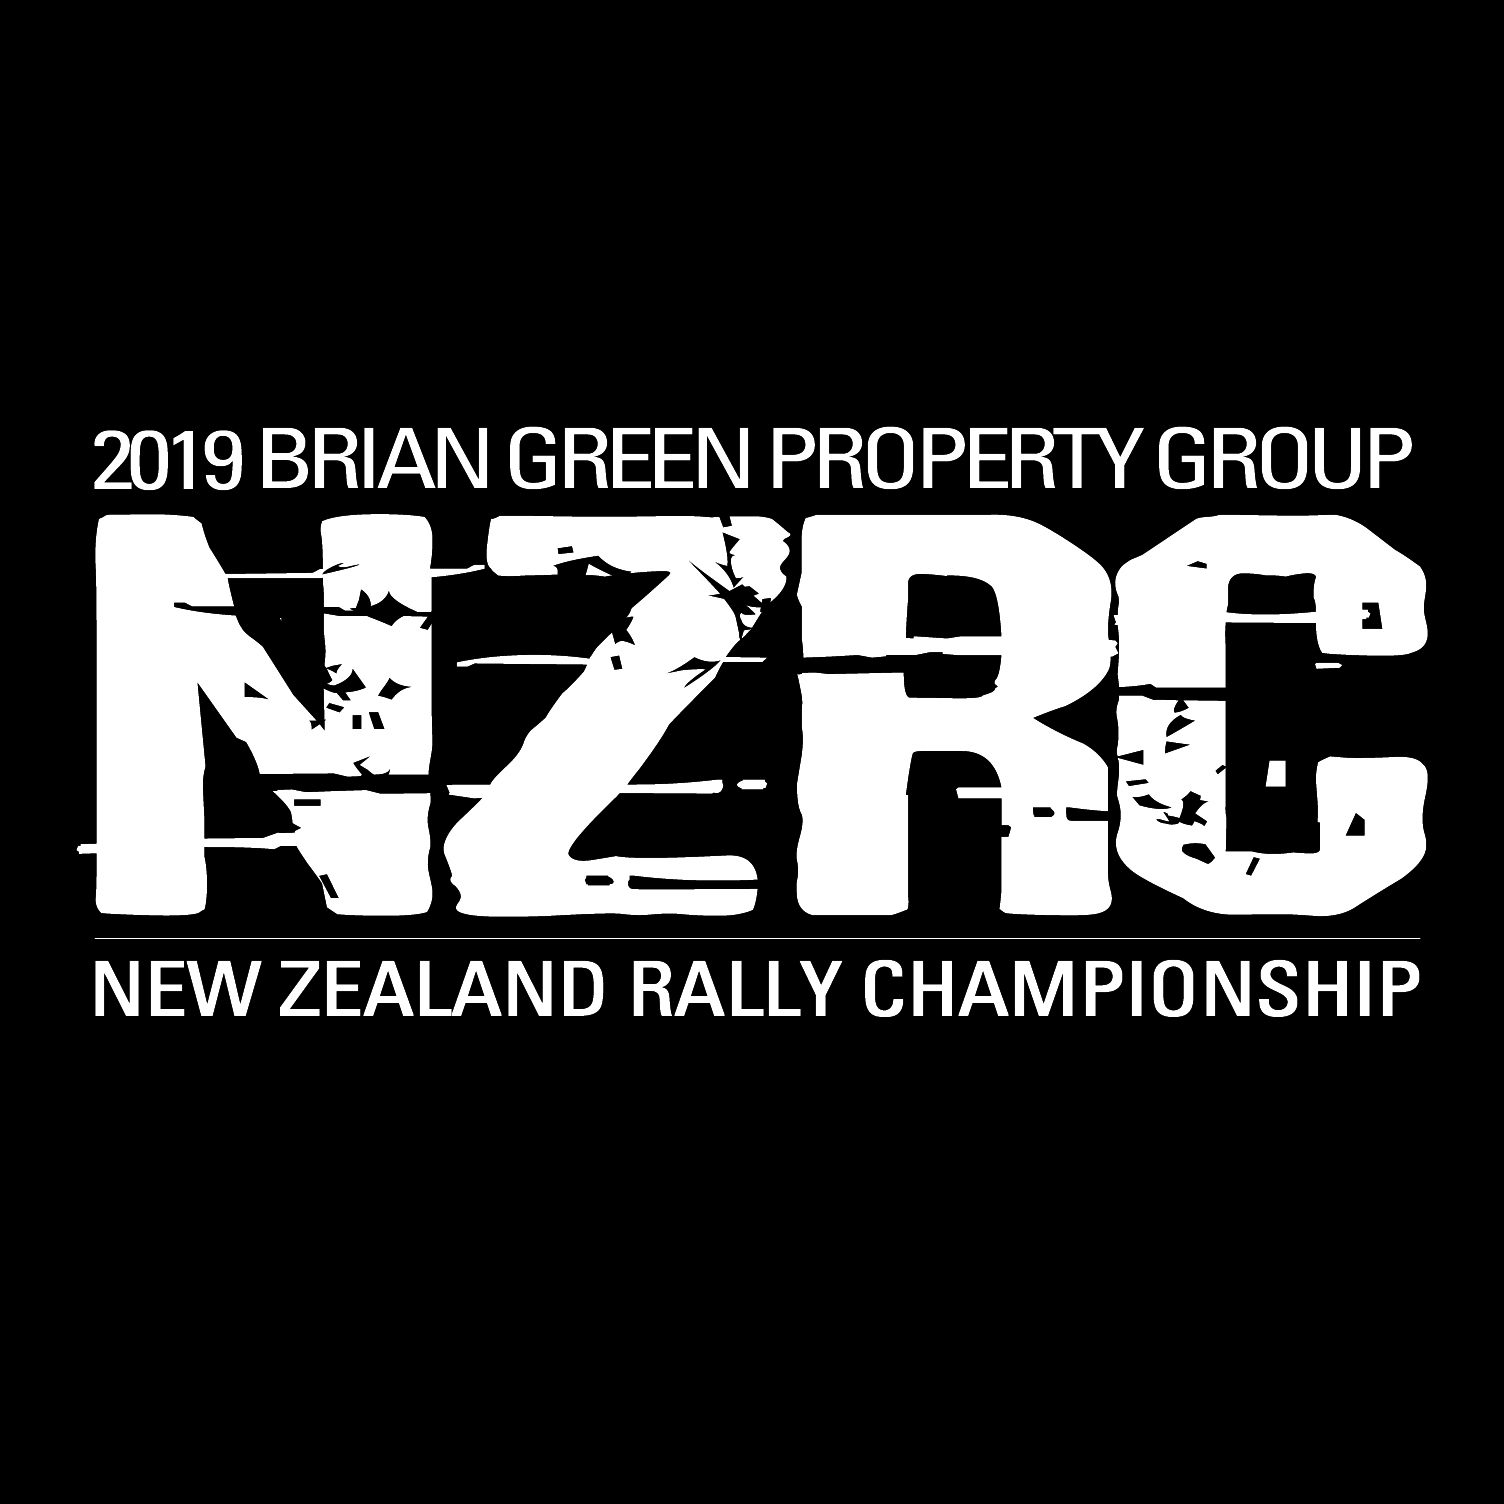 Two from two for Masons | :: Brian Green Property Group New Zealand Rally Championship ::